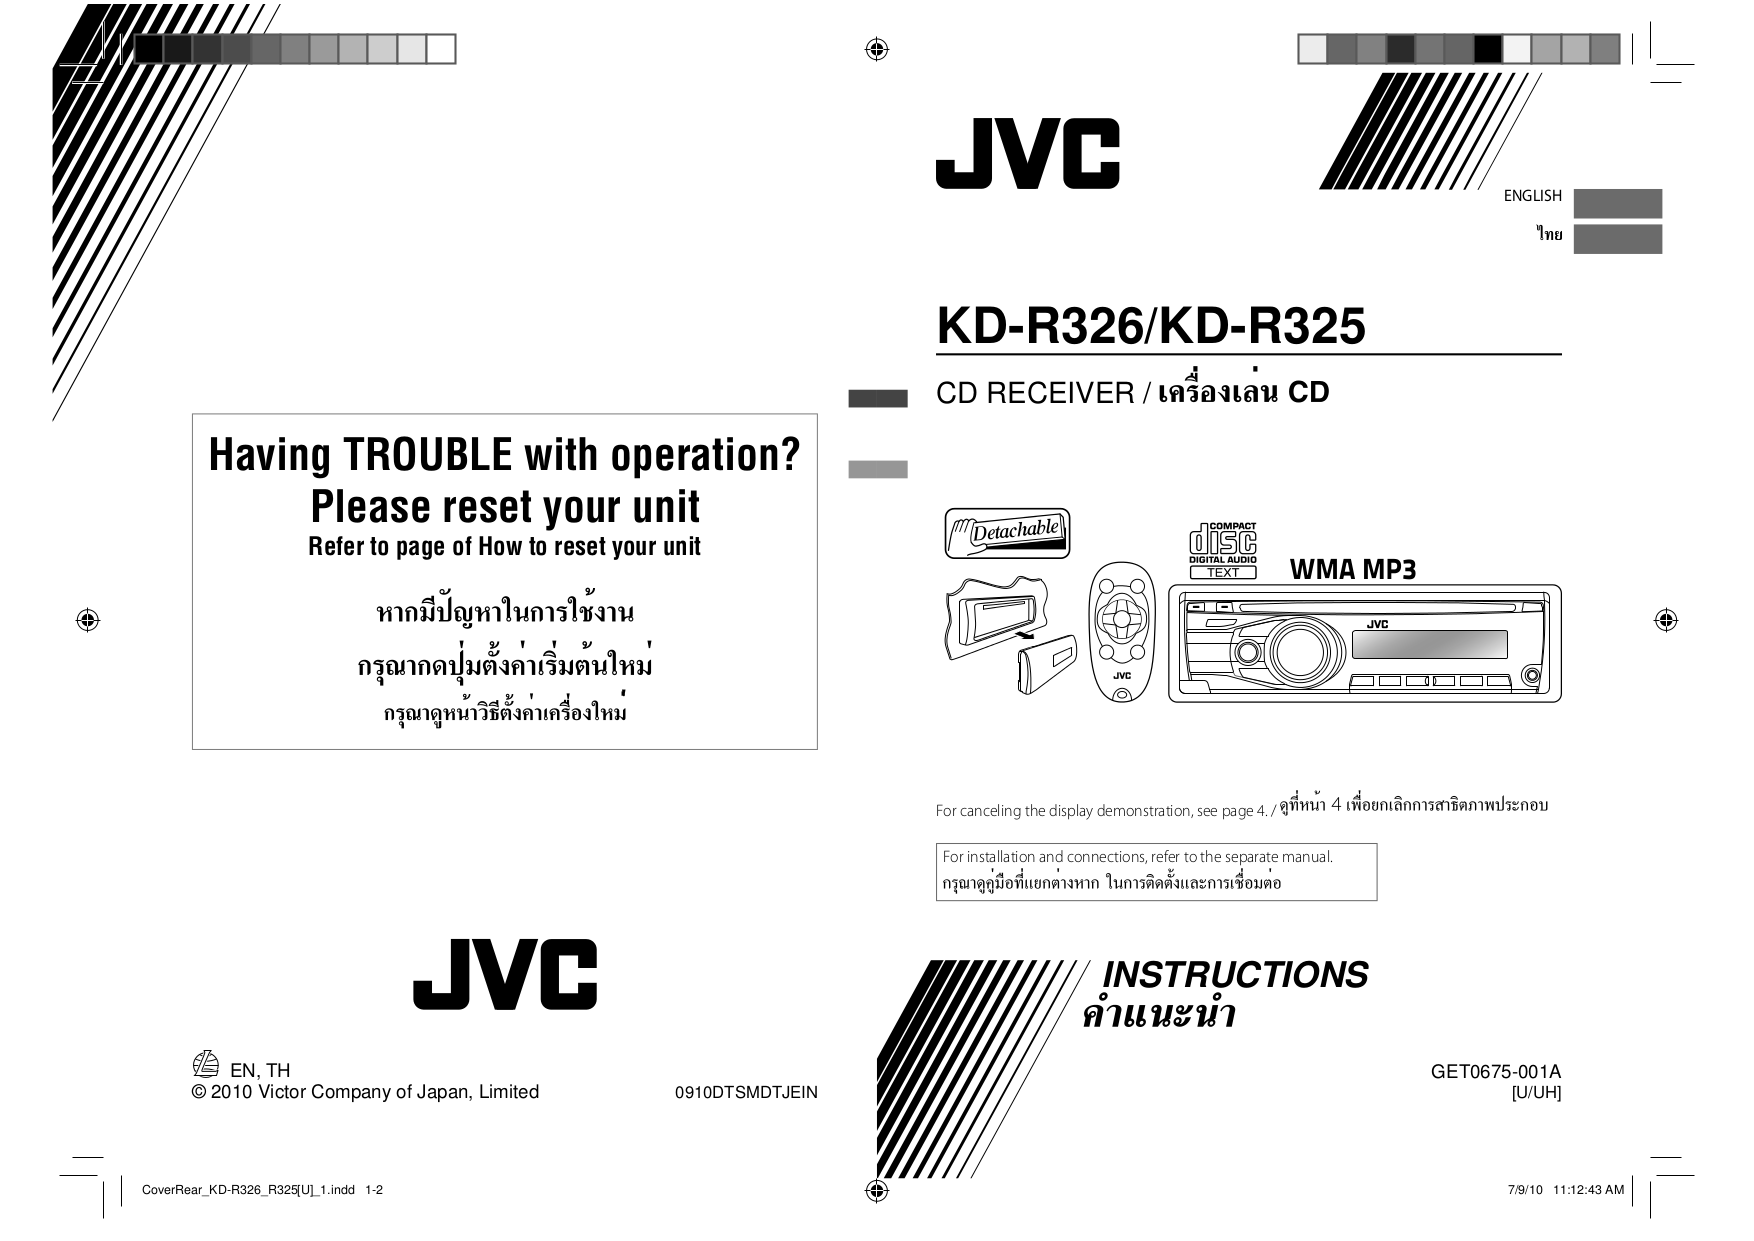 KD R326 Instruction Manual.pdf 0 jvc kd r326 wiring diagram jvc kd r326 wiring diagram \u2022 free jvc kd r320 wiring diagram at edmiracle.co